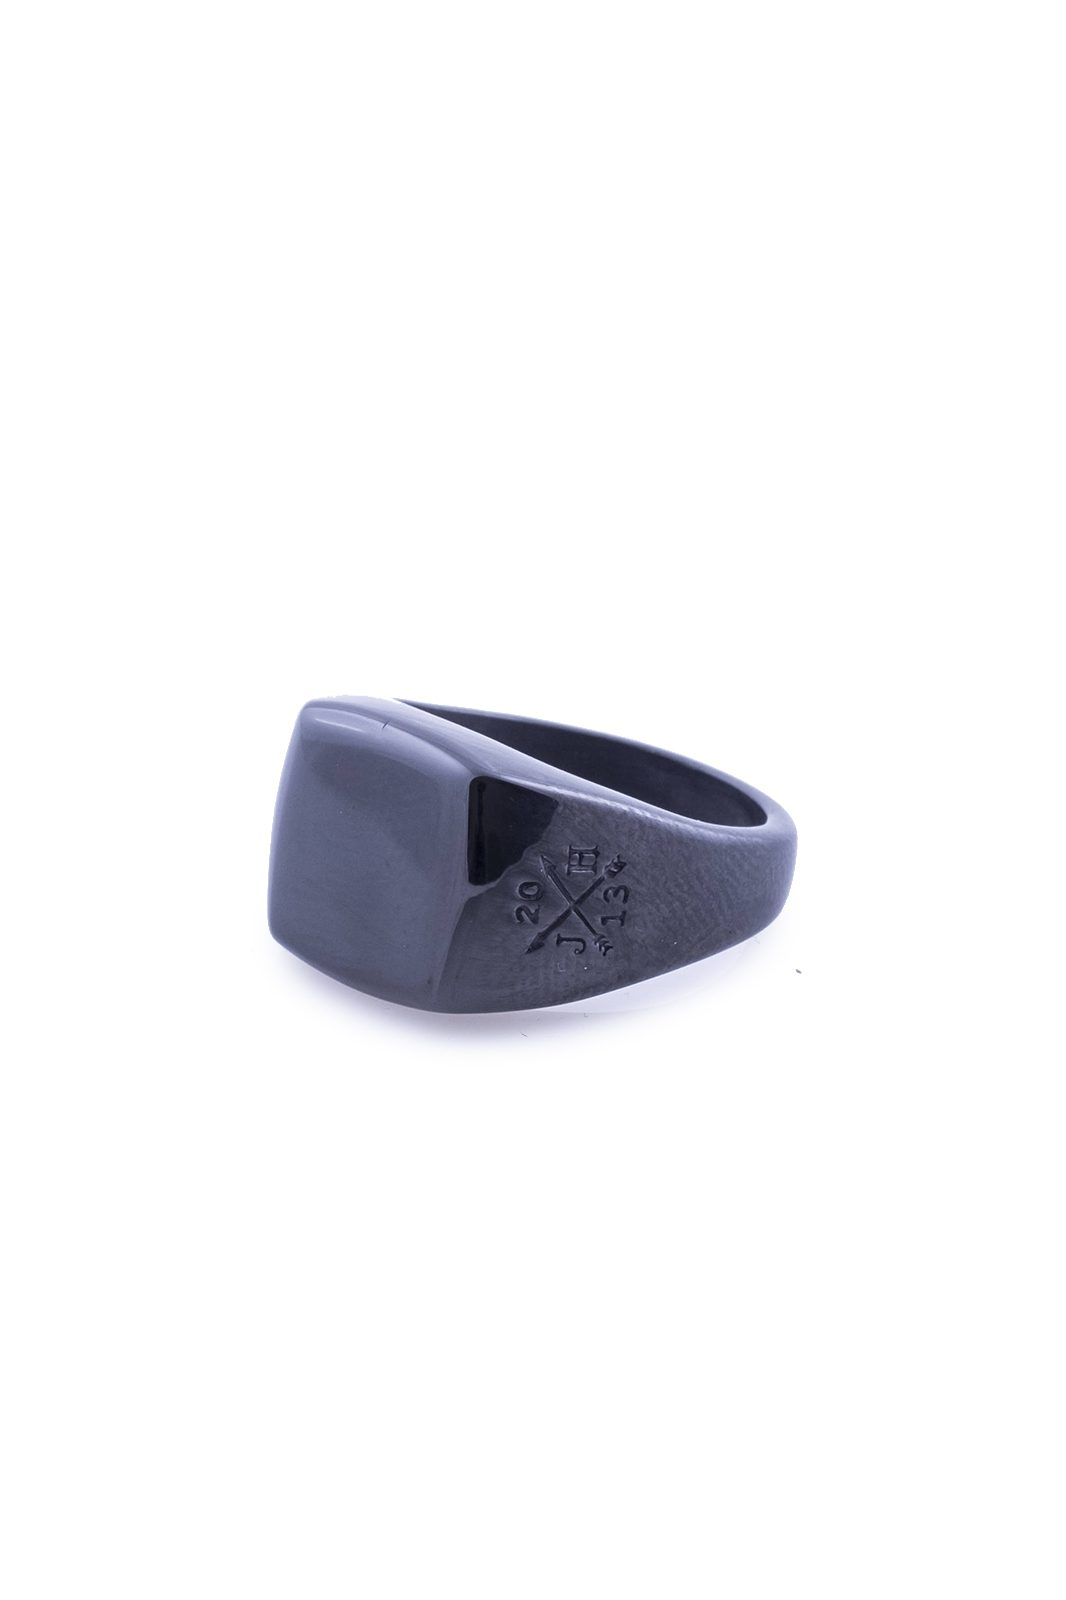 Ring Kenta Black Stainless Steel